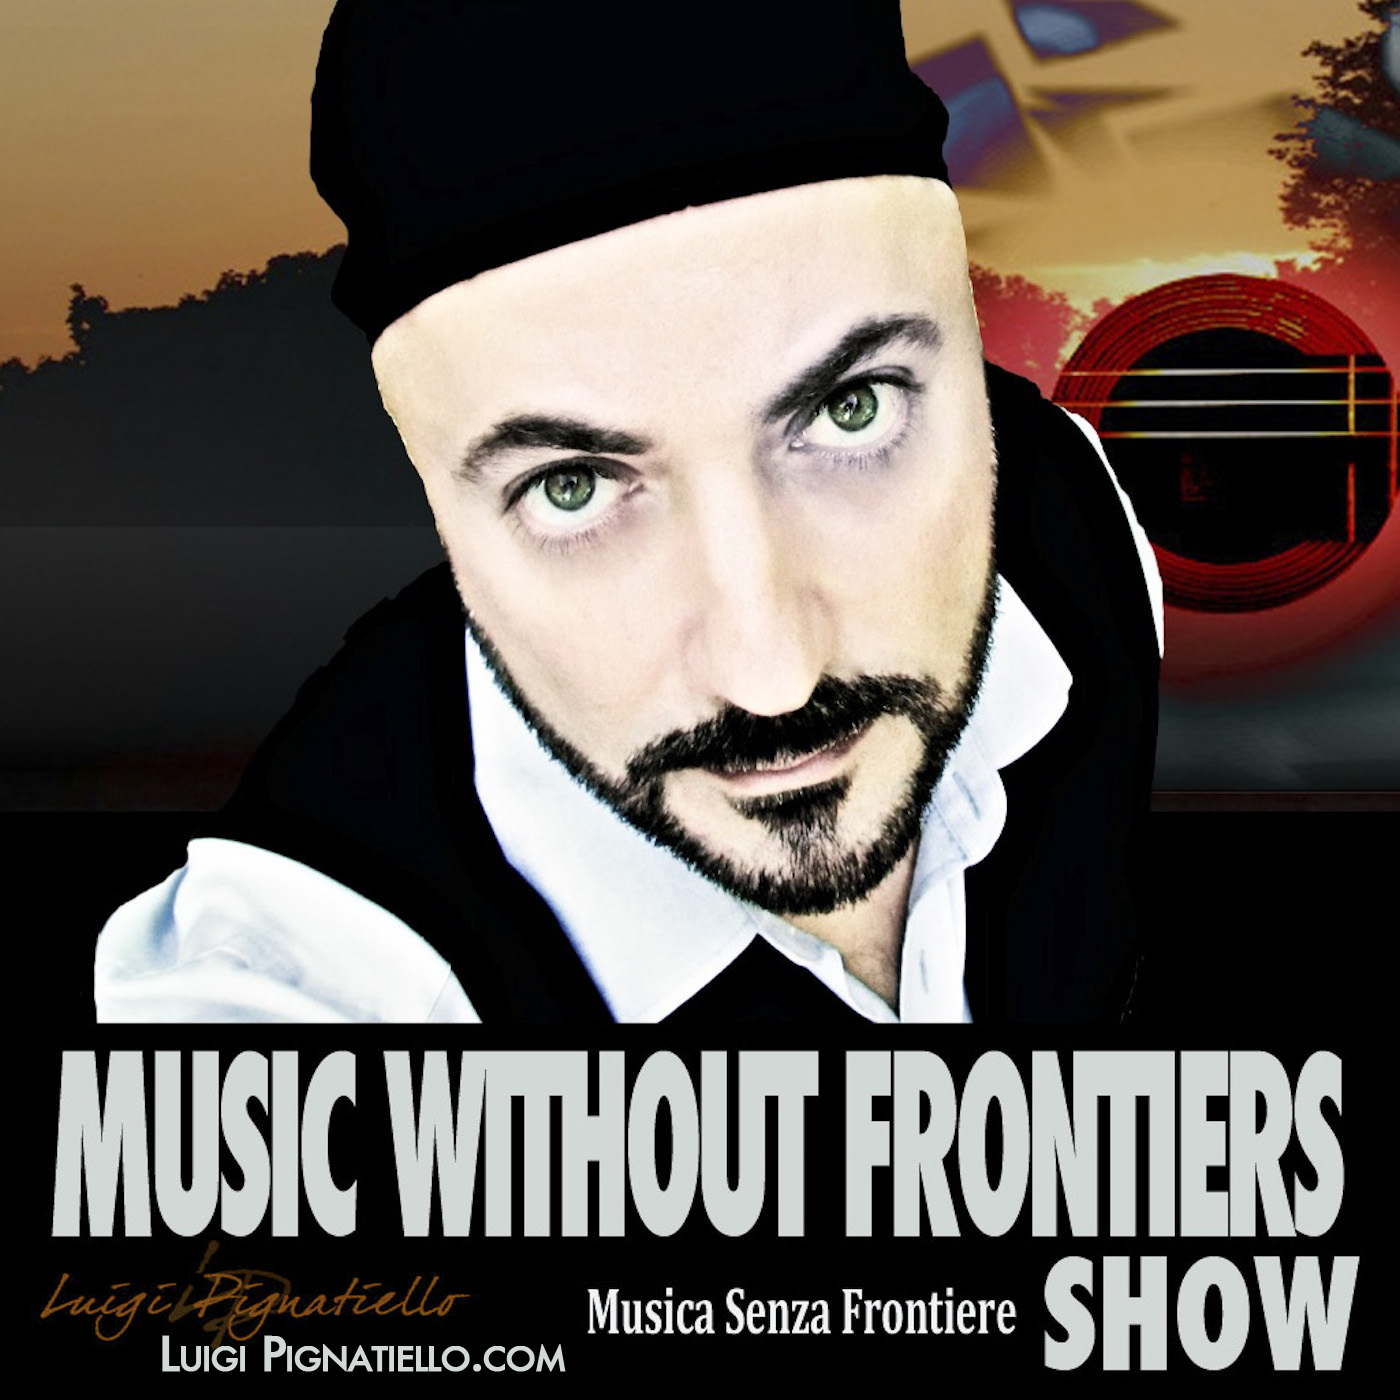 Music Without Frontiers Show